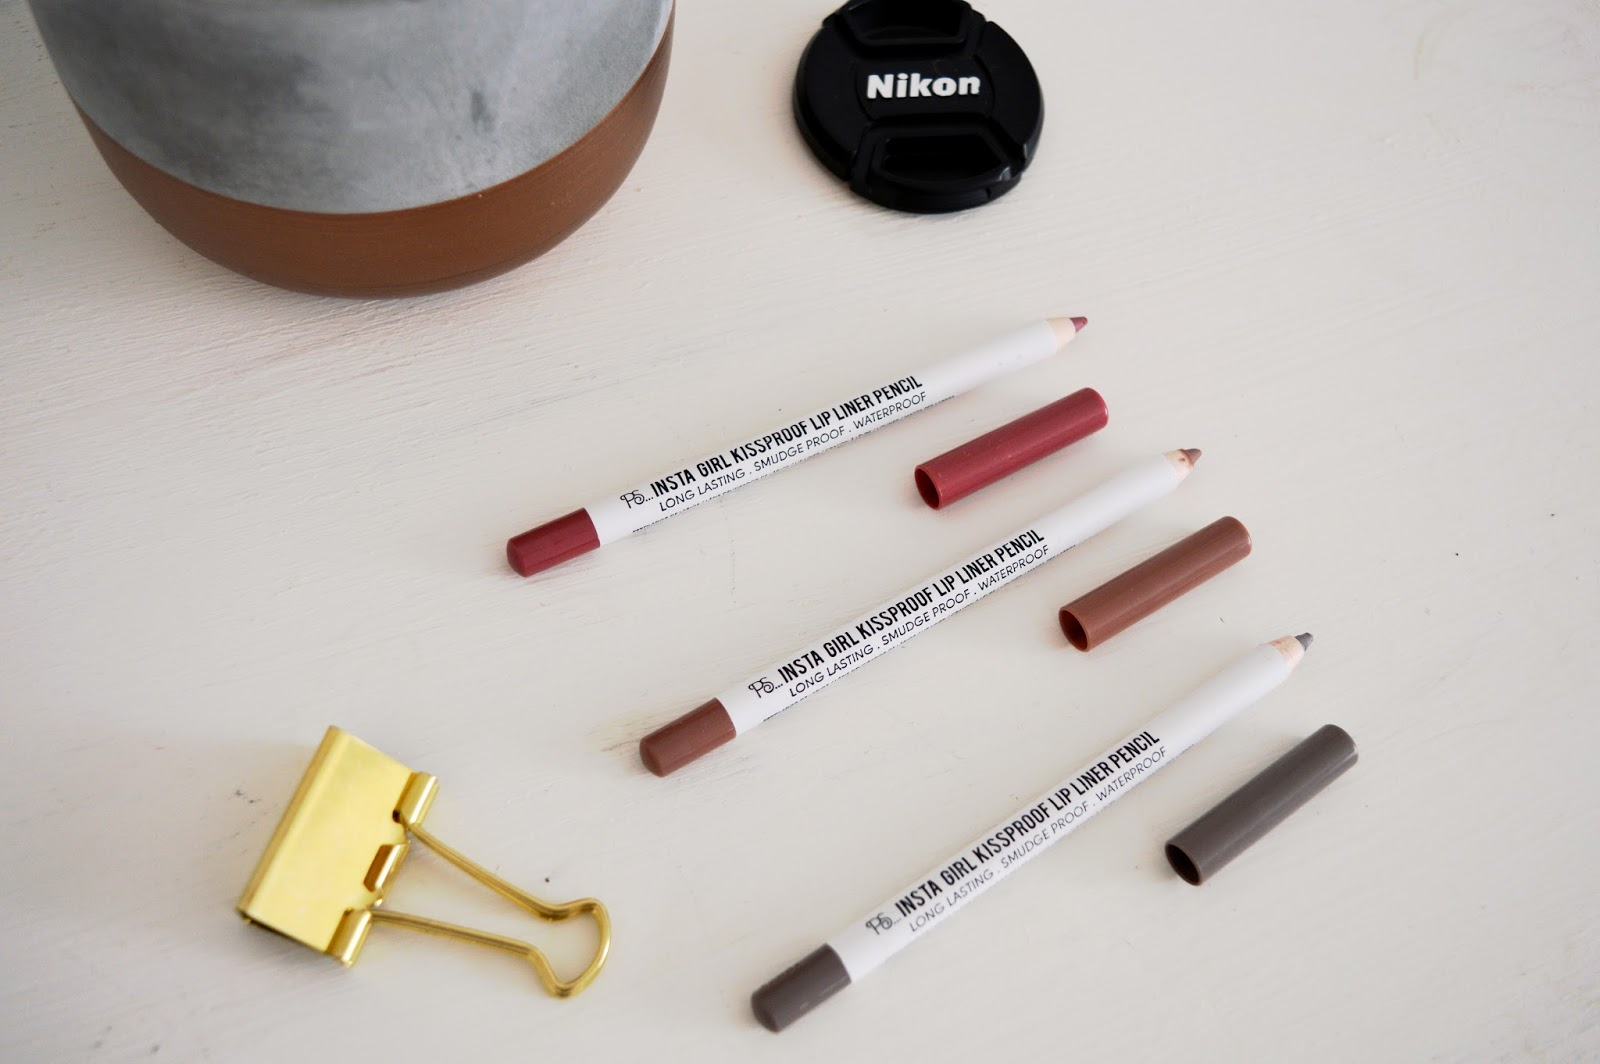 Primark makeup review, UK beauty blog, Hampshire bloggers, Insta Girl Primark makeup